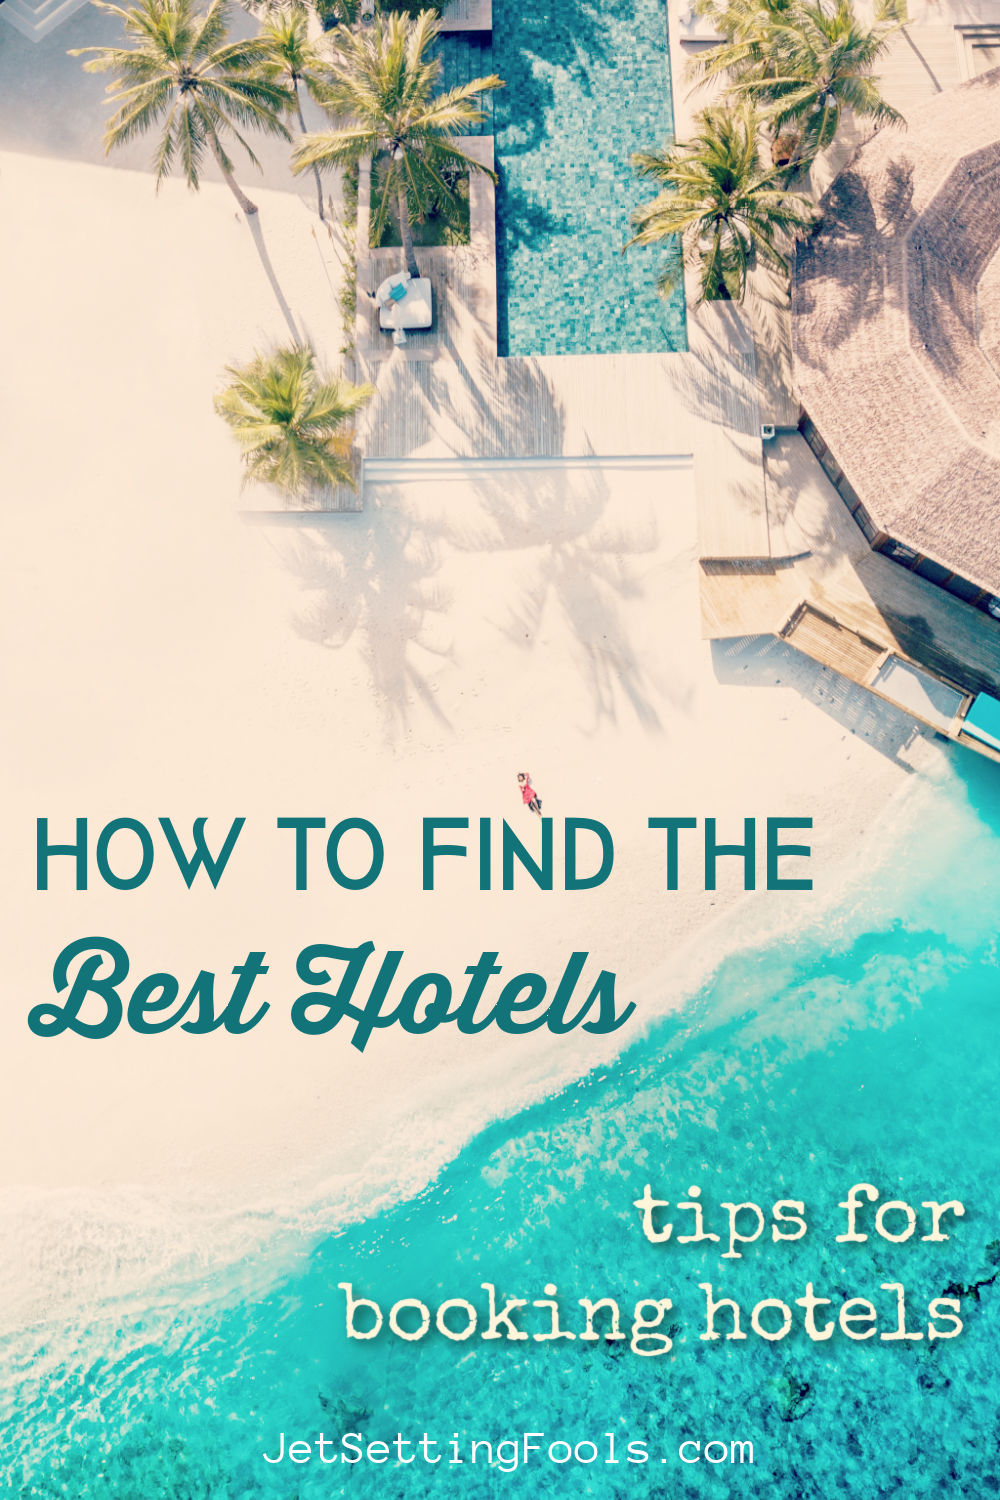 How To Find the Best Hotels Tips for Booking by JetSettingFools.com